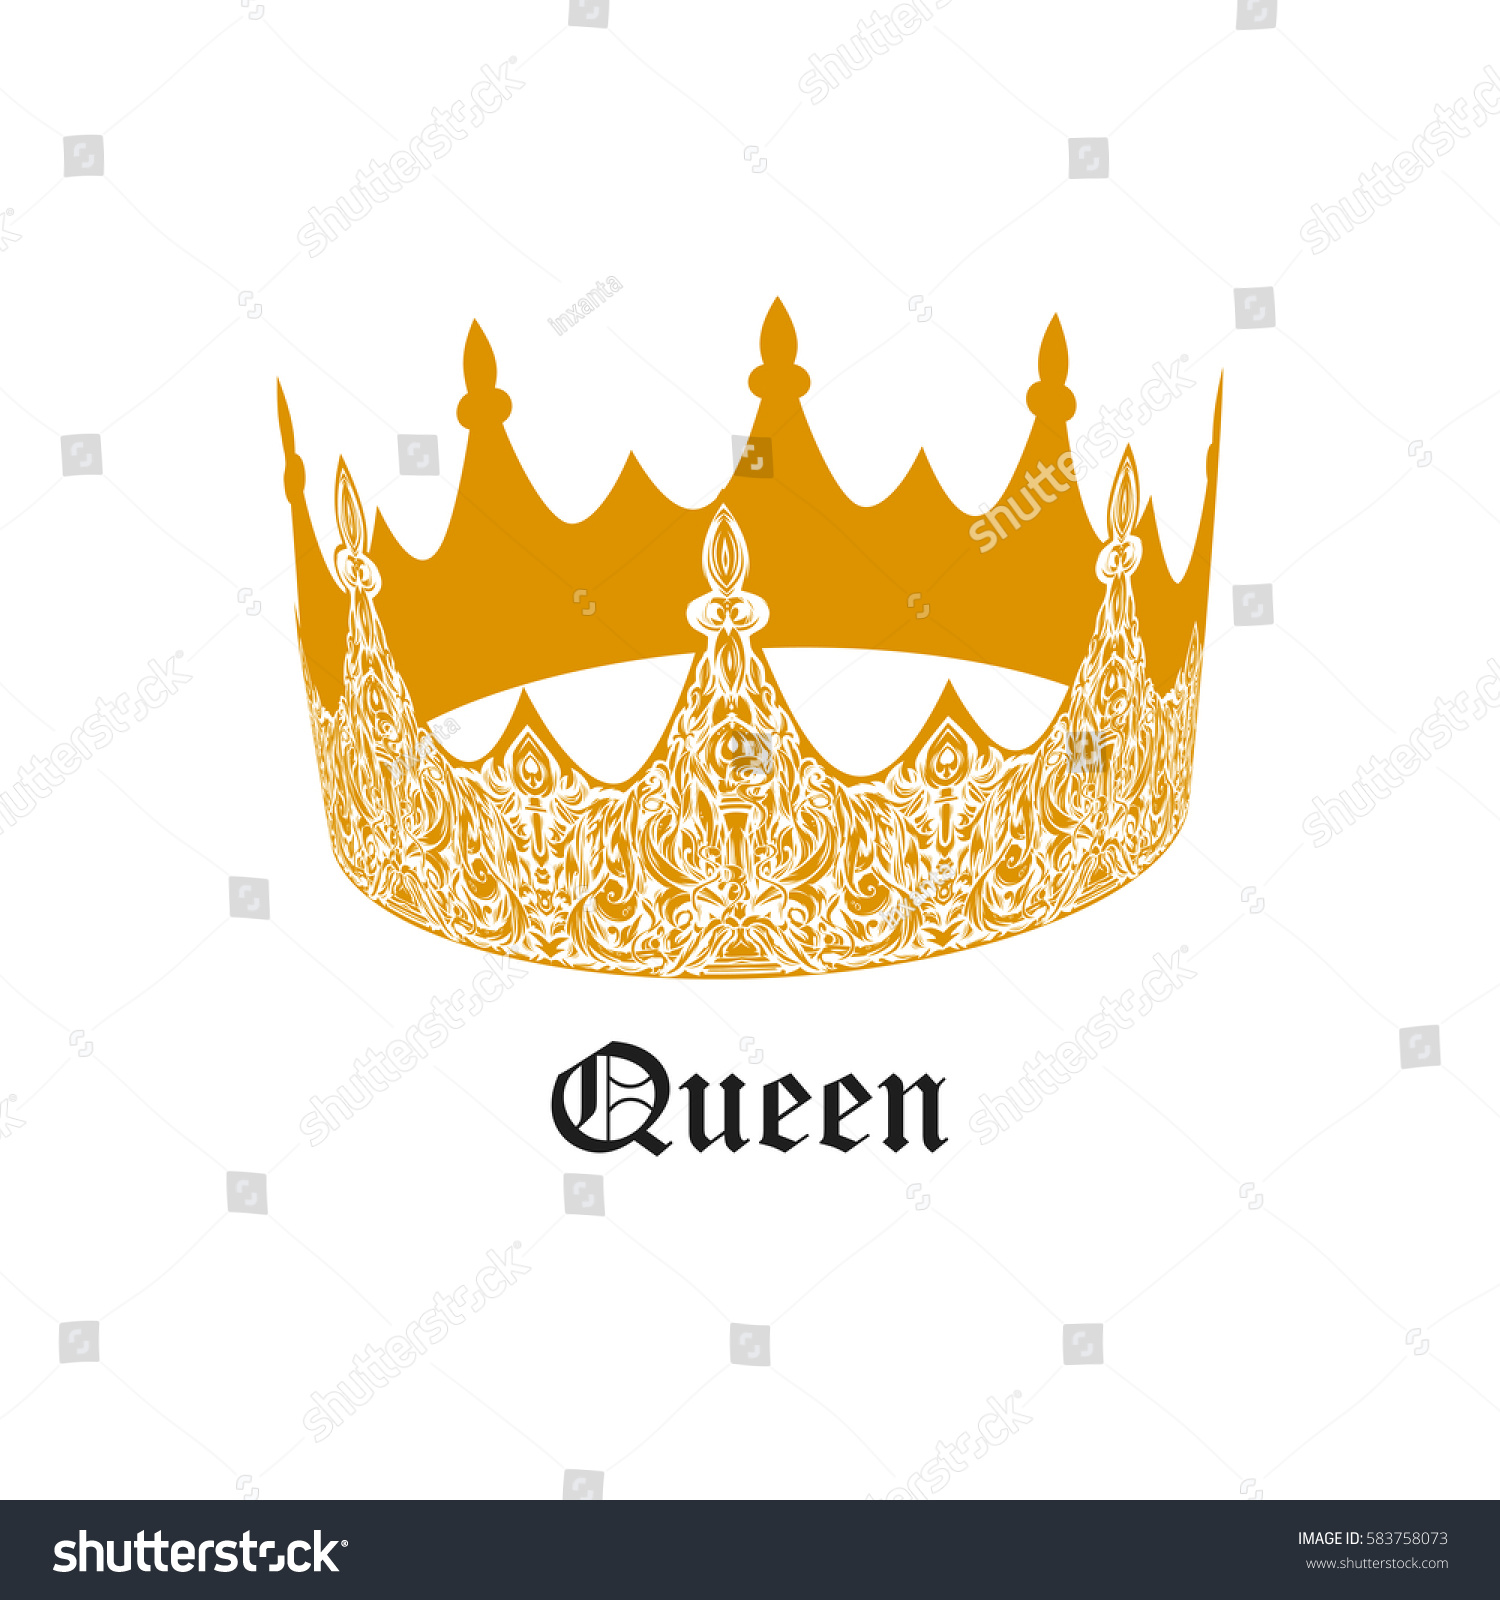 Beautiful gold vintage crown patterned old stock vector 583758073 beautiful gold vintage crown patterned old element symbol of power royal attribute biocorpaavc Gallery